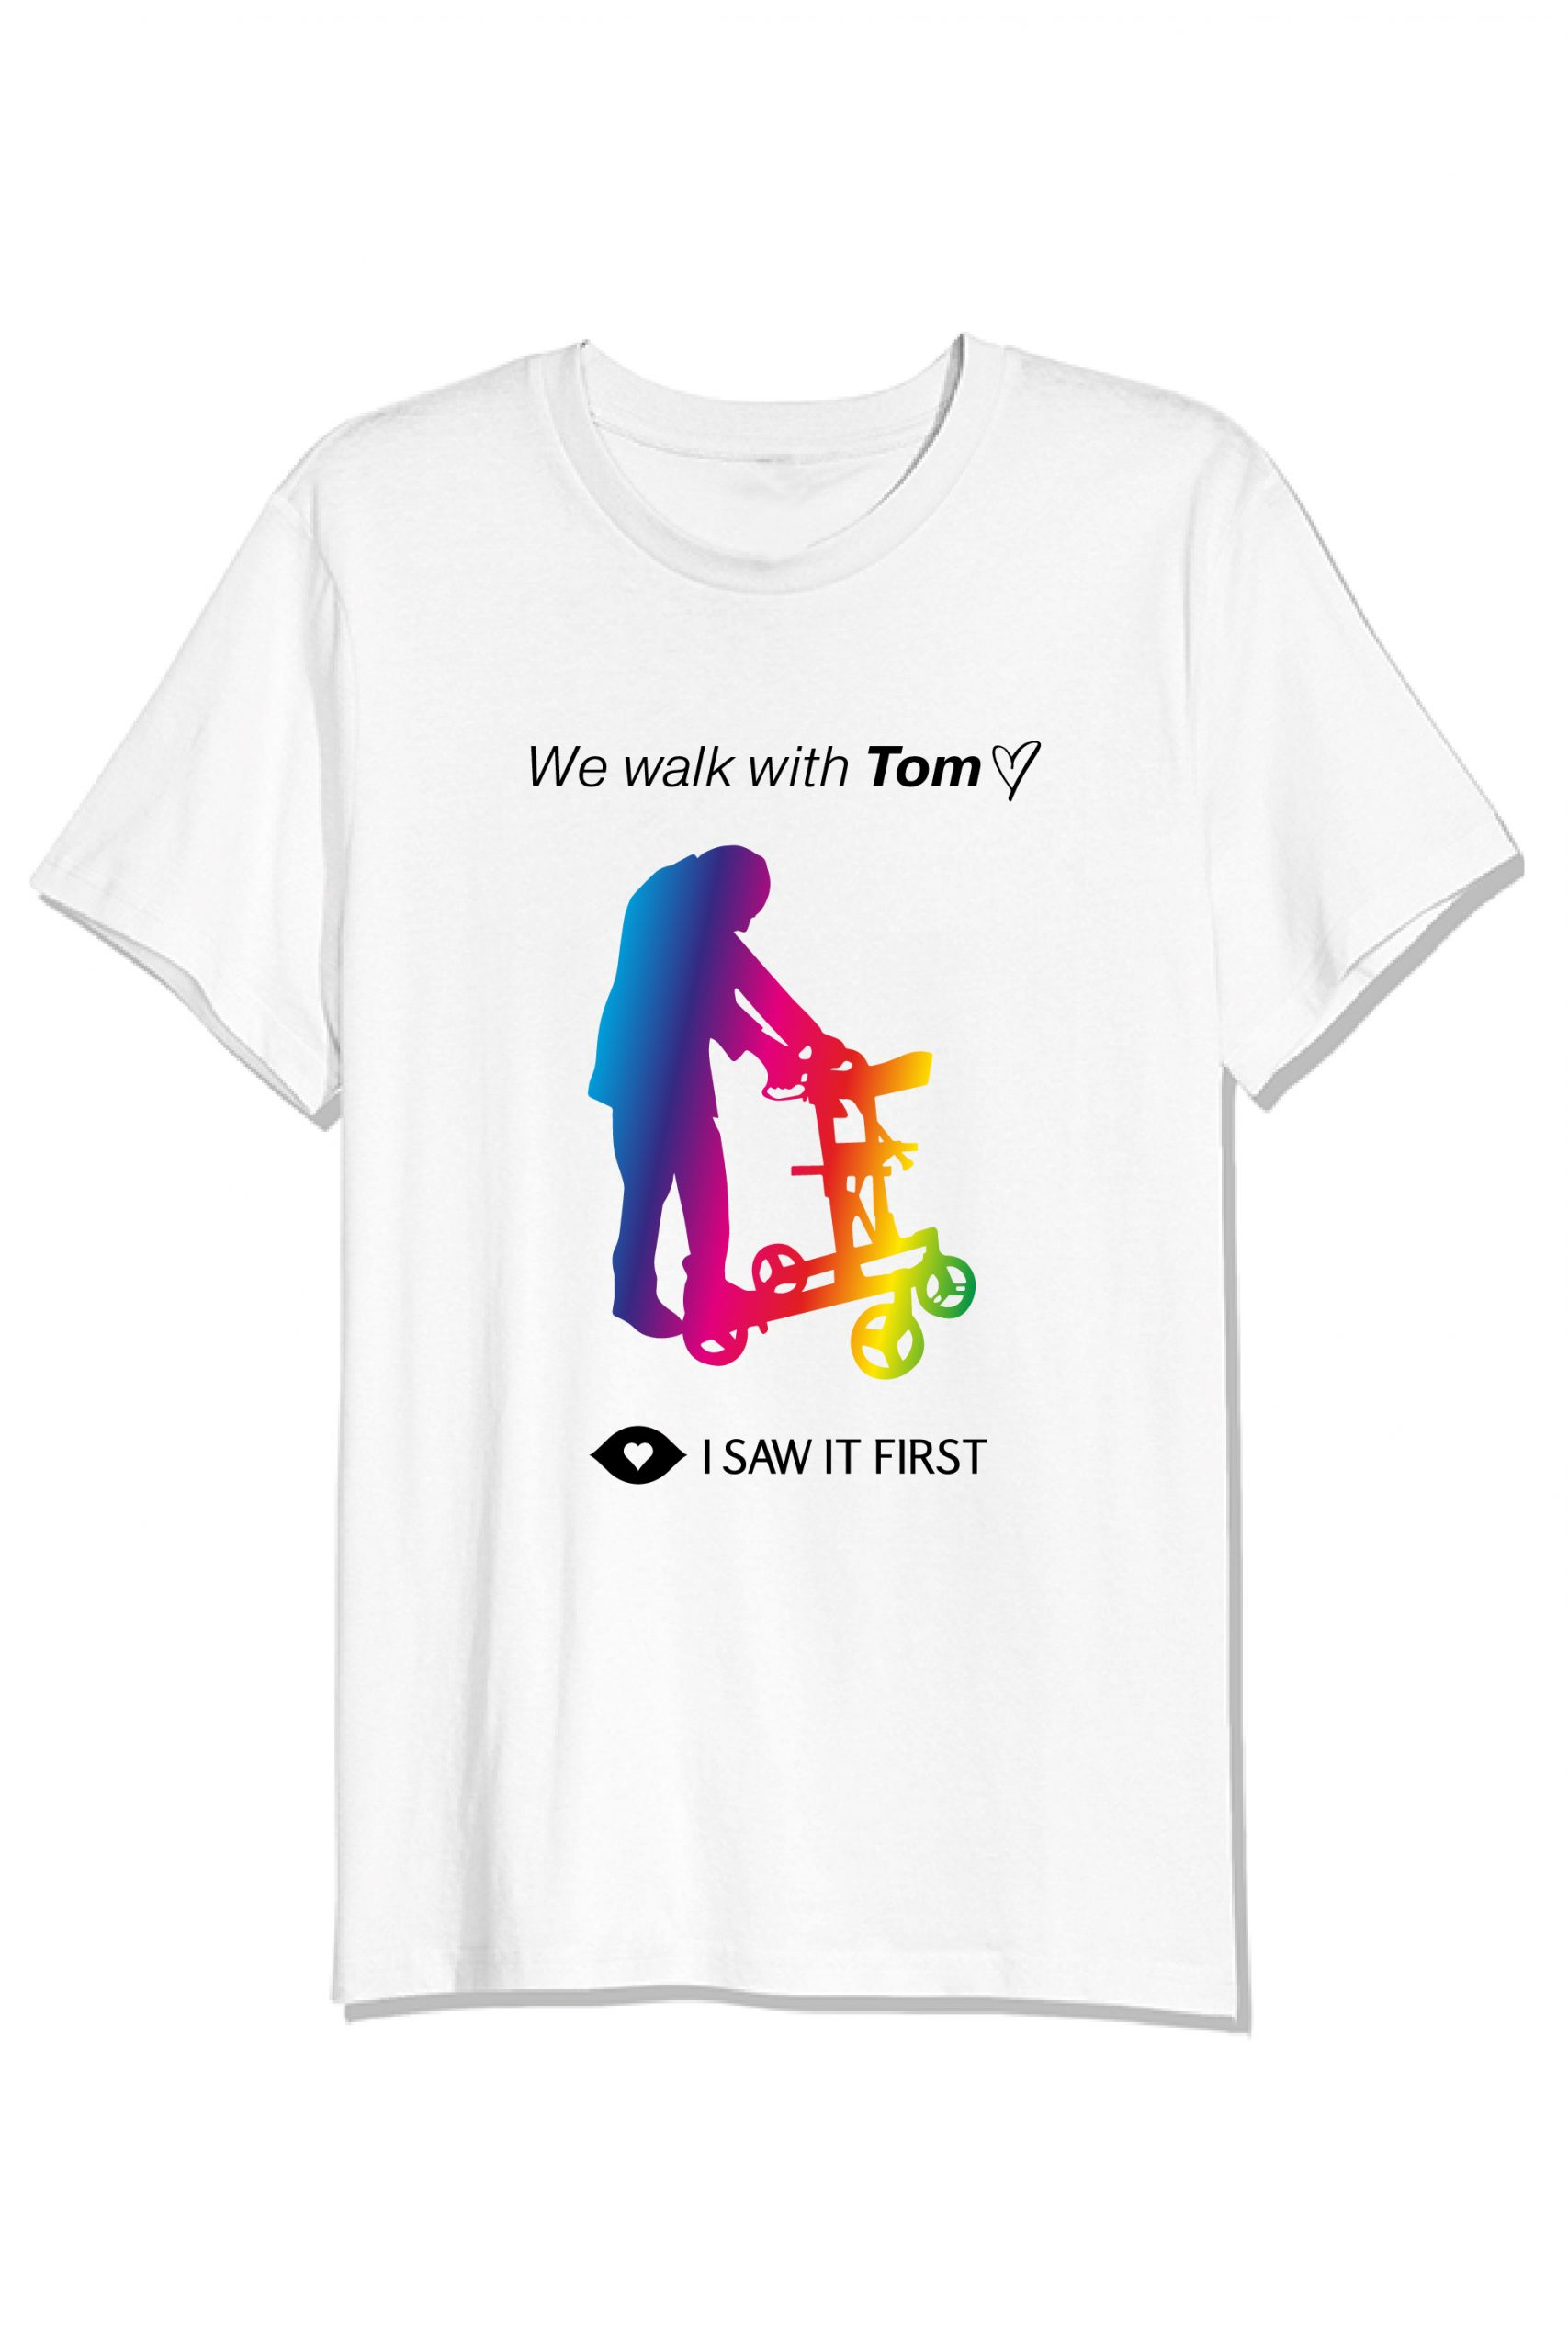 'We walk with Tom' t-shirt